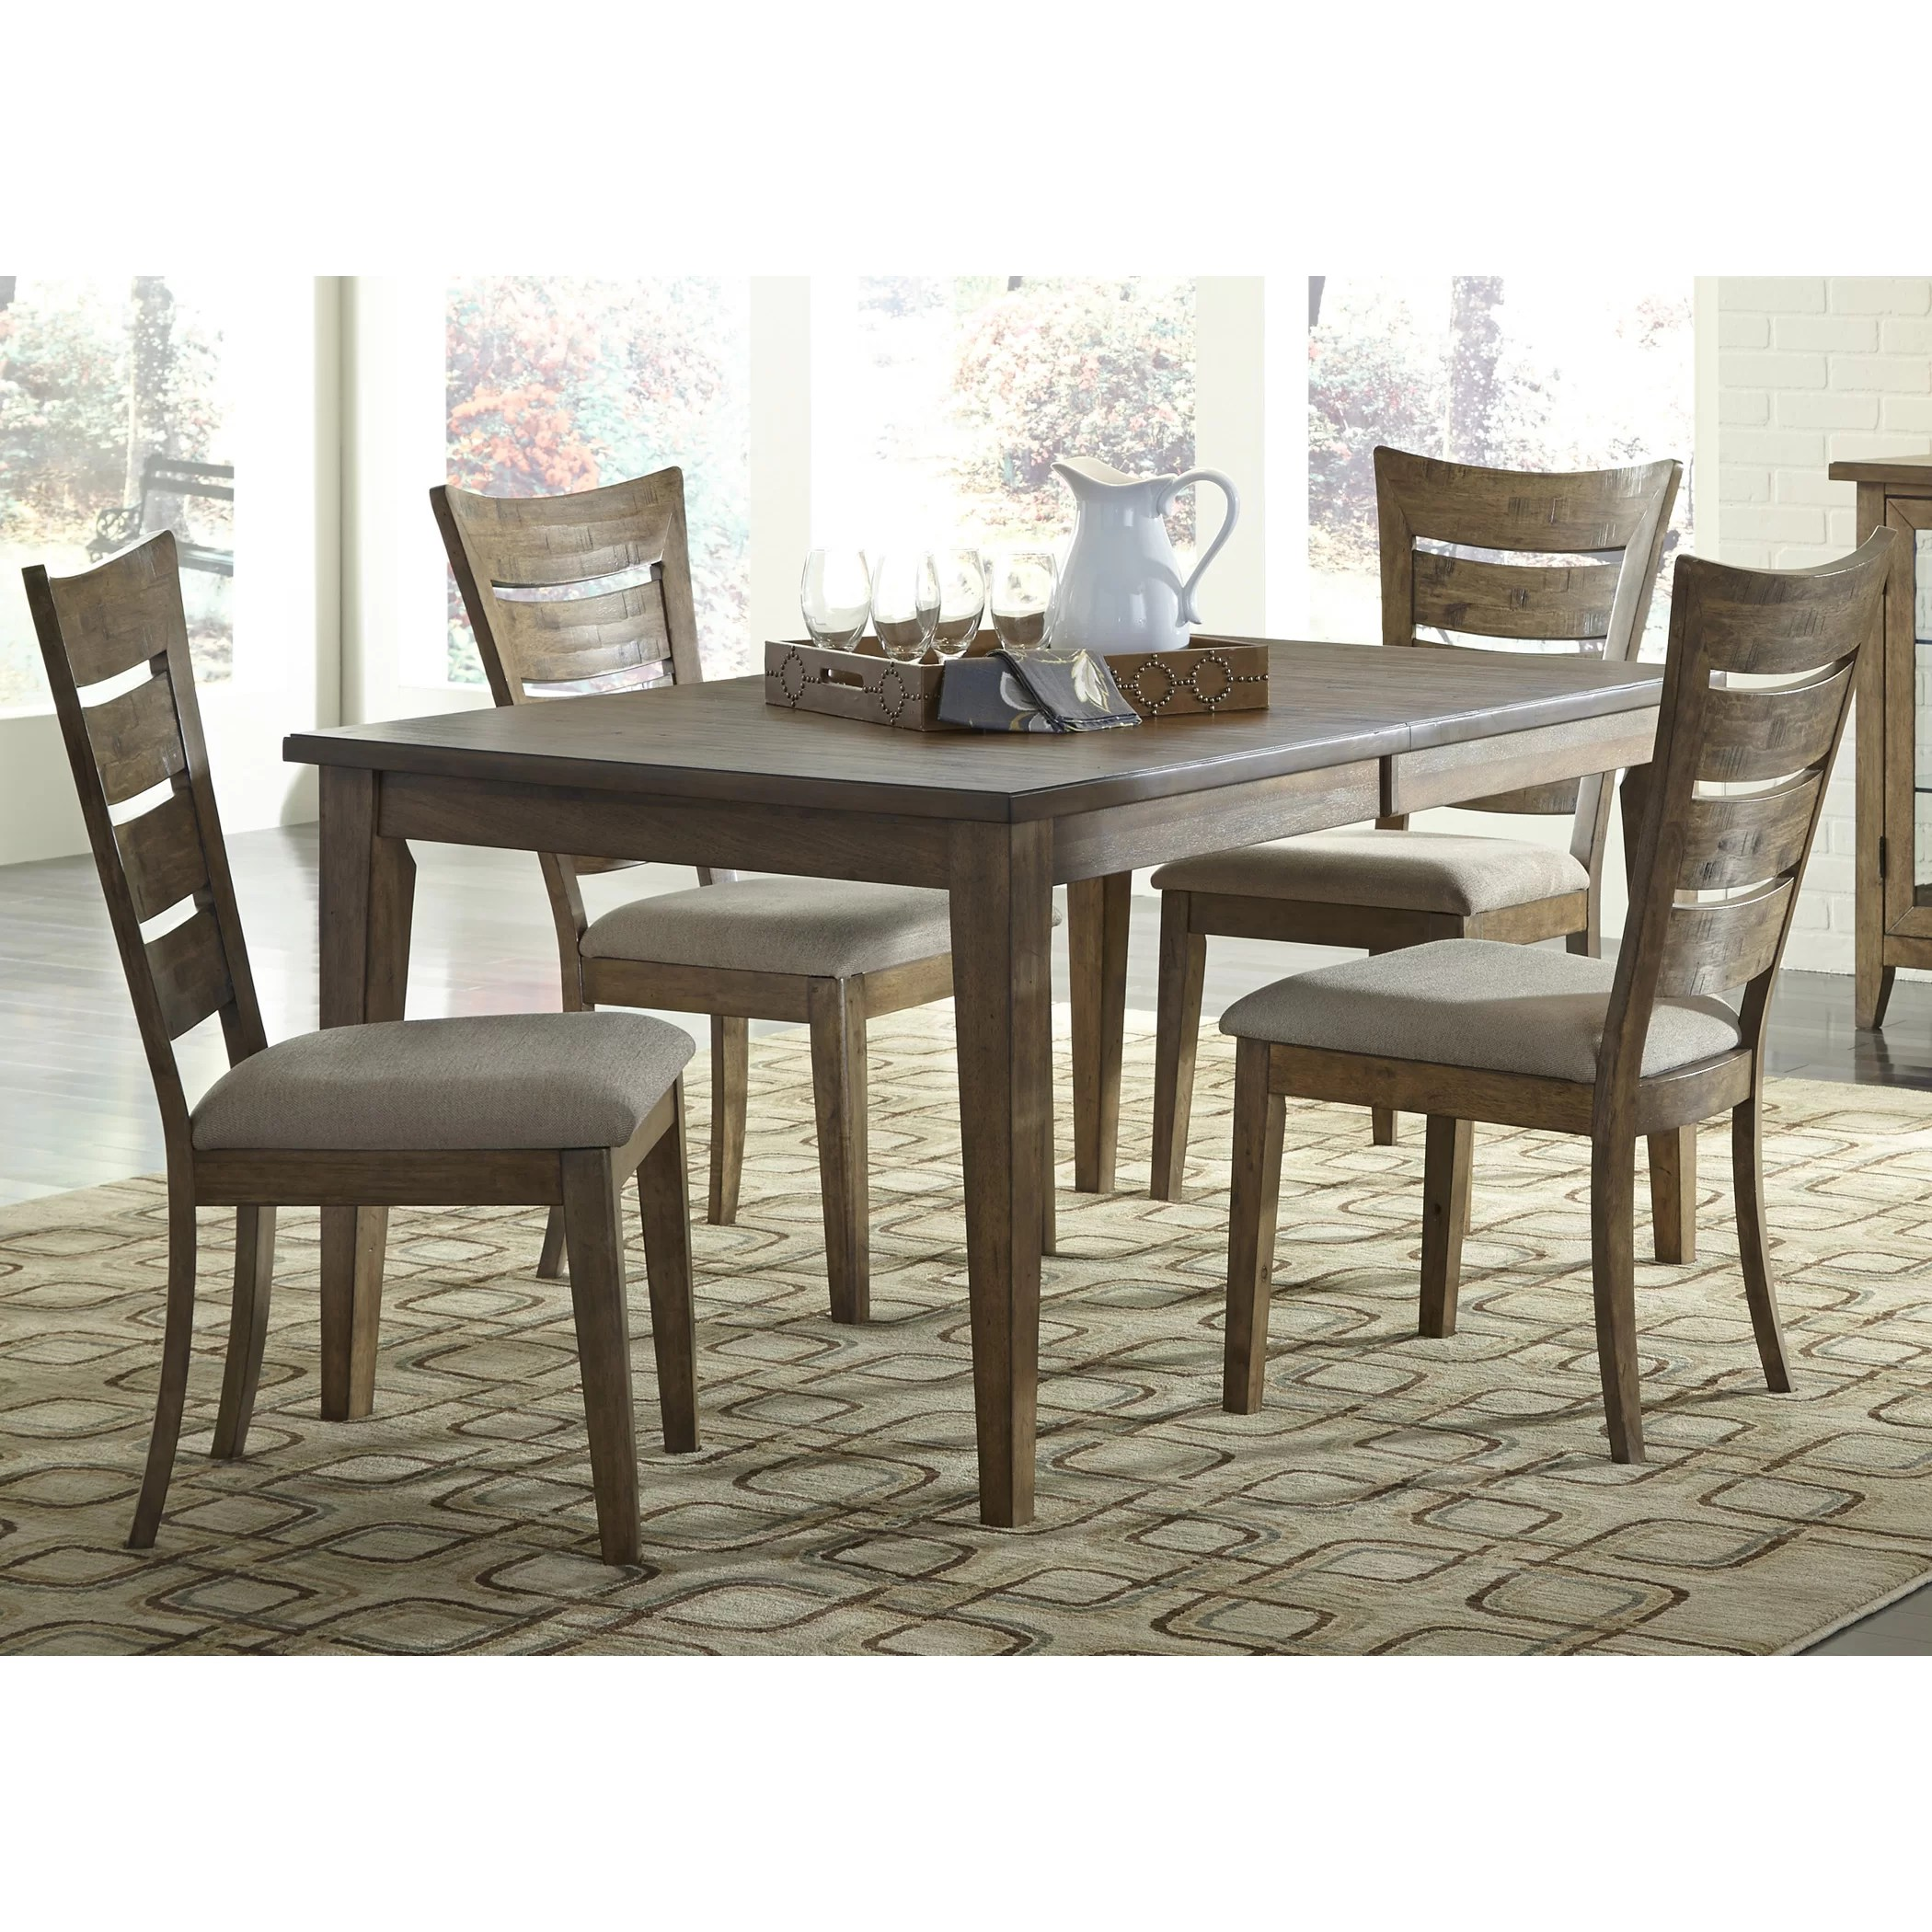 liberty dining chairs baby bounce chair furniture 5 piece set and reviews wayfair